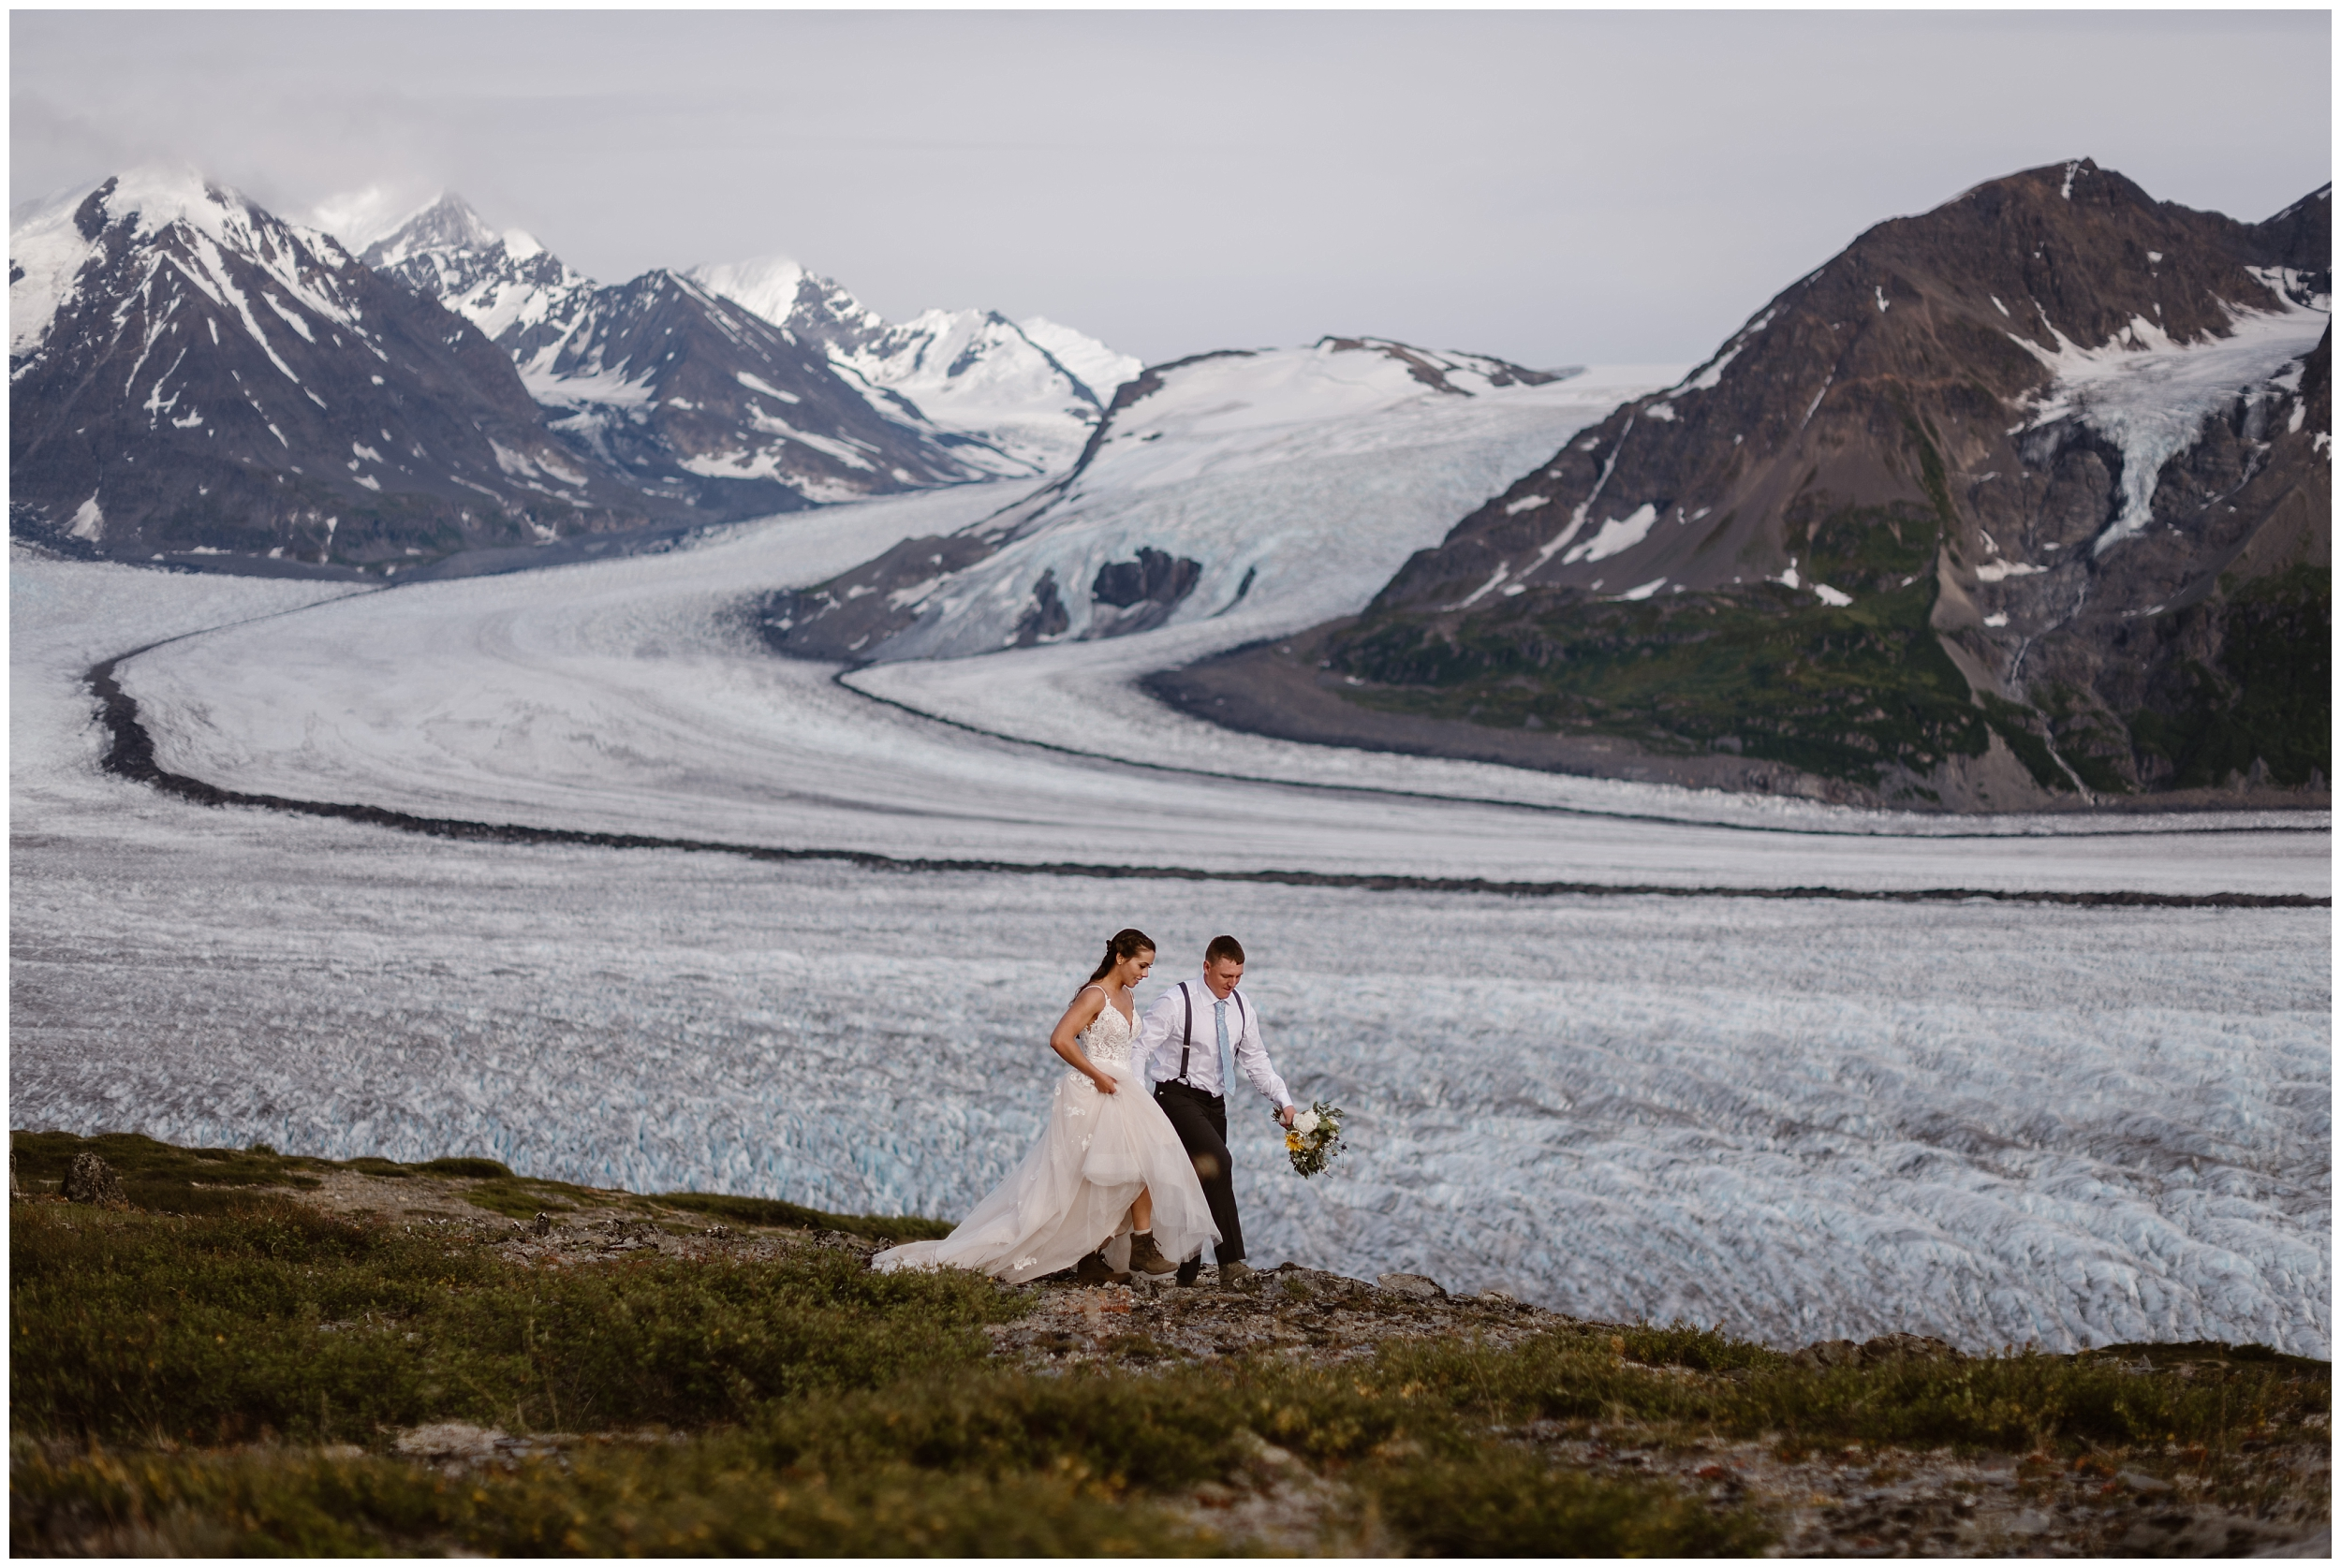 A bride and groom take hands and walk by a glacial lagoon in Alaska—a gorgeous spot for a destination elopement. These adventure elopement pictures were captured by Adventure Instead, an elopement photographer.